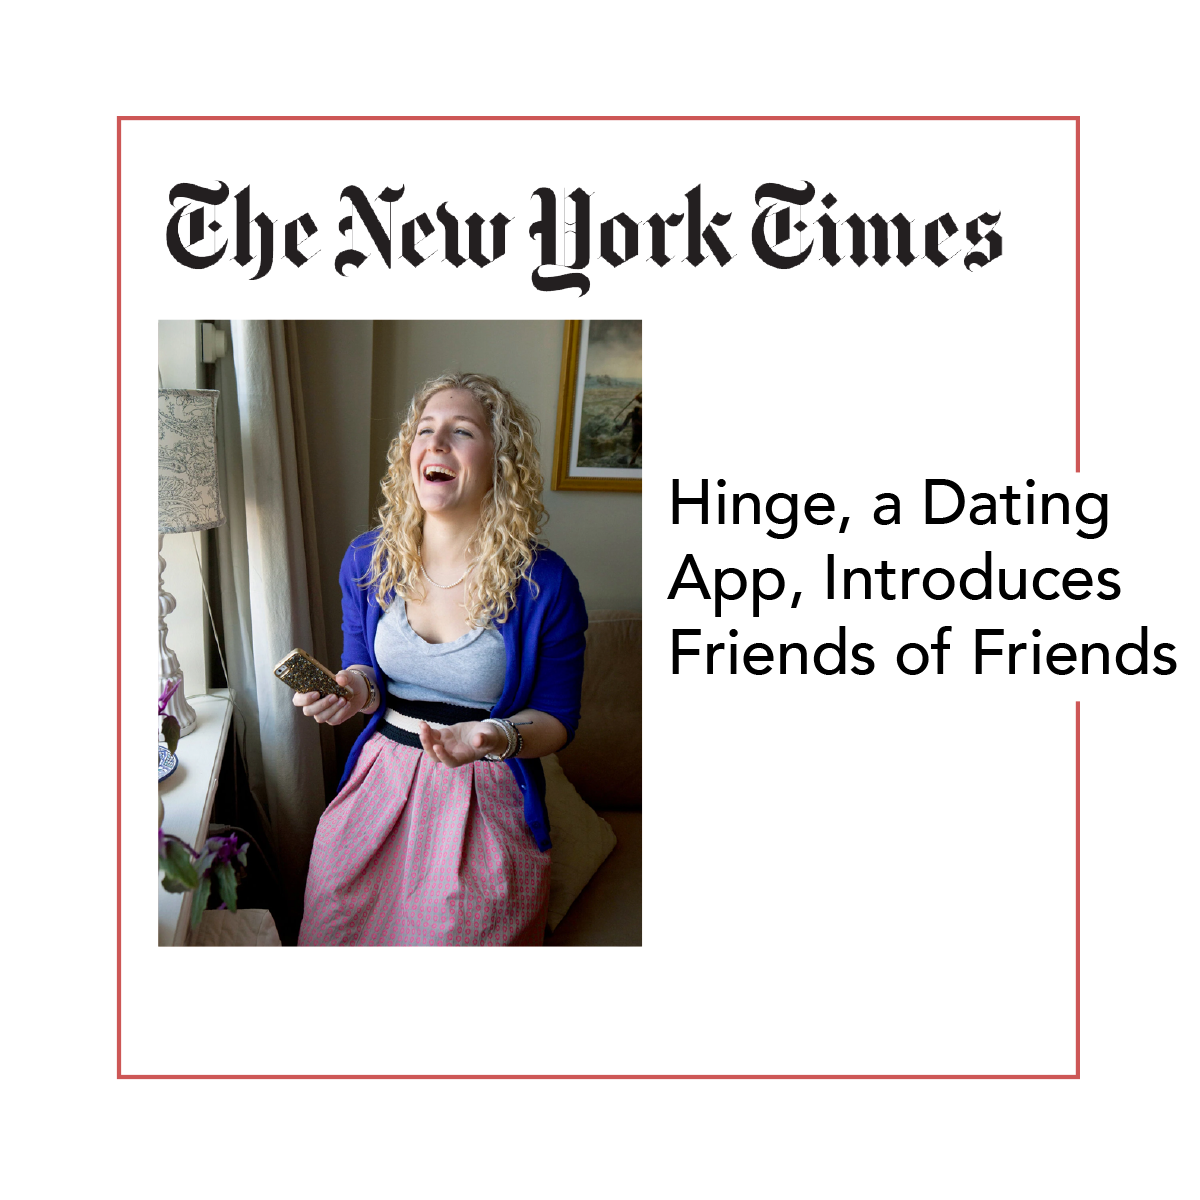 The New York Times + Hinge